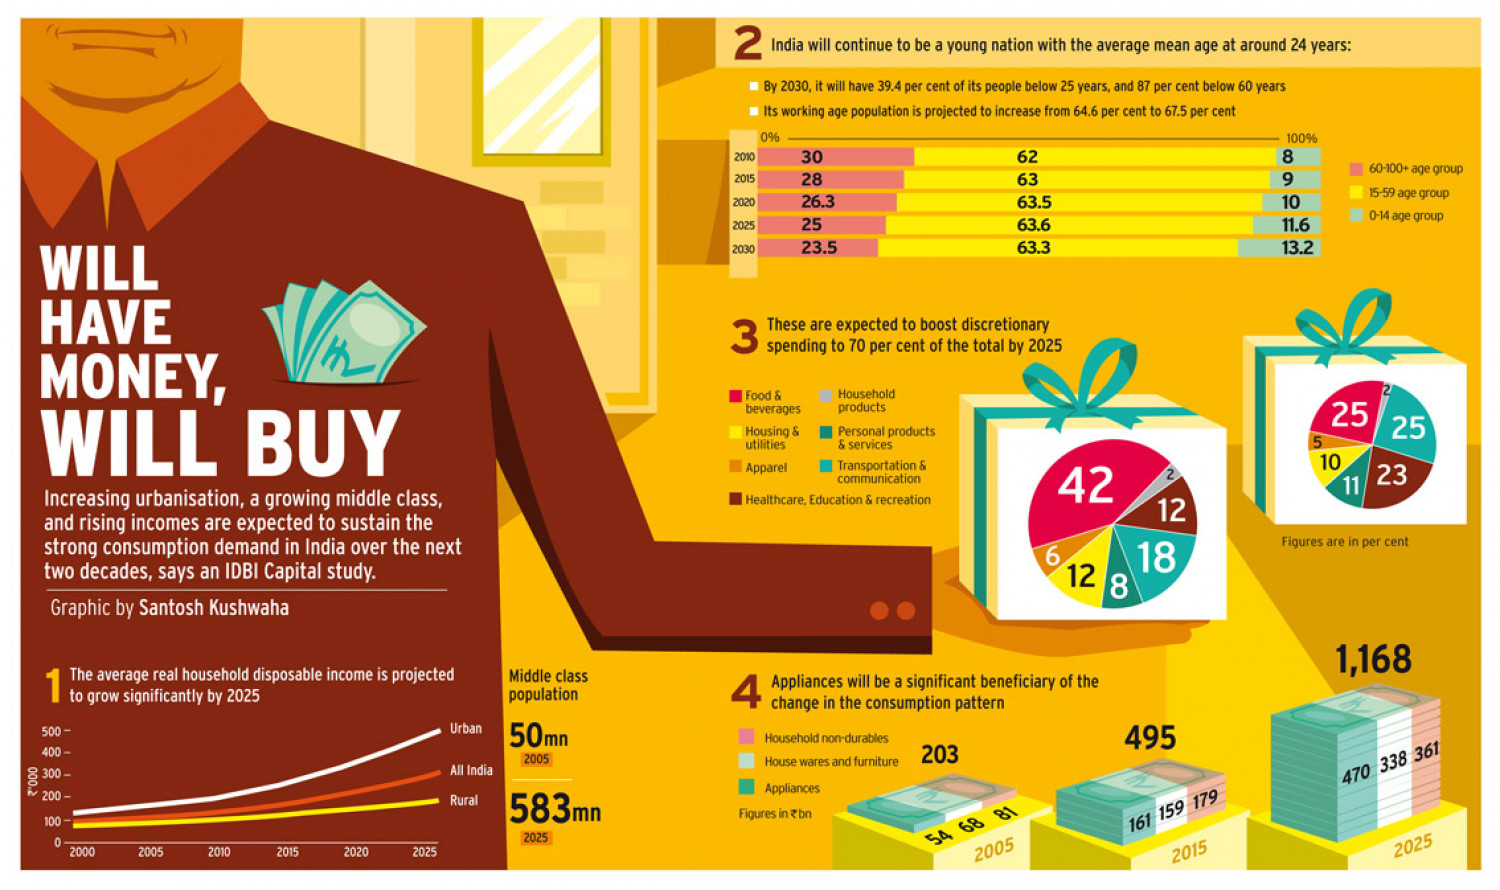 WILL HAVE MONEY, WILL BUY Infographic